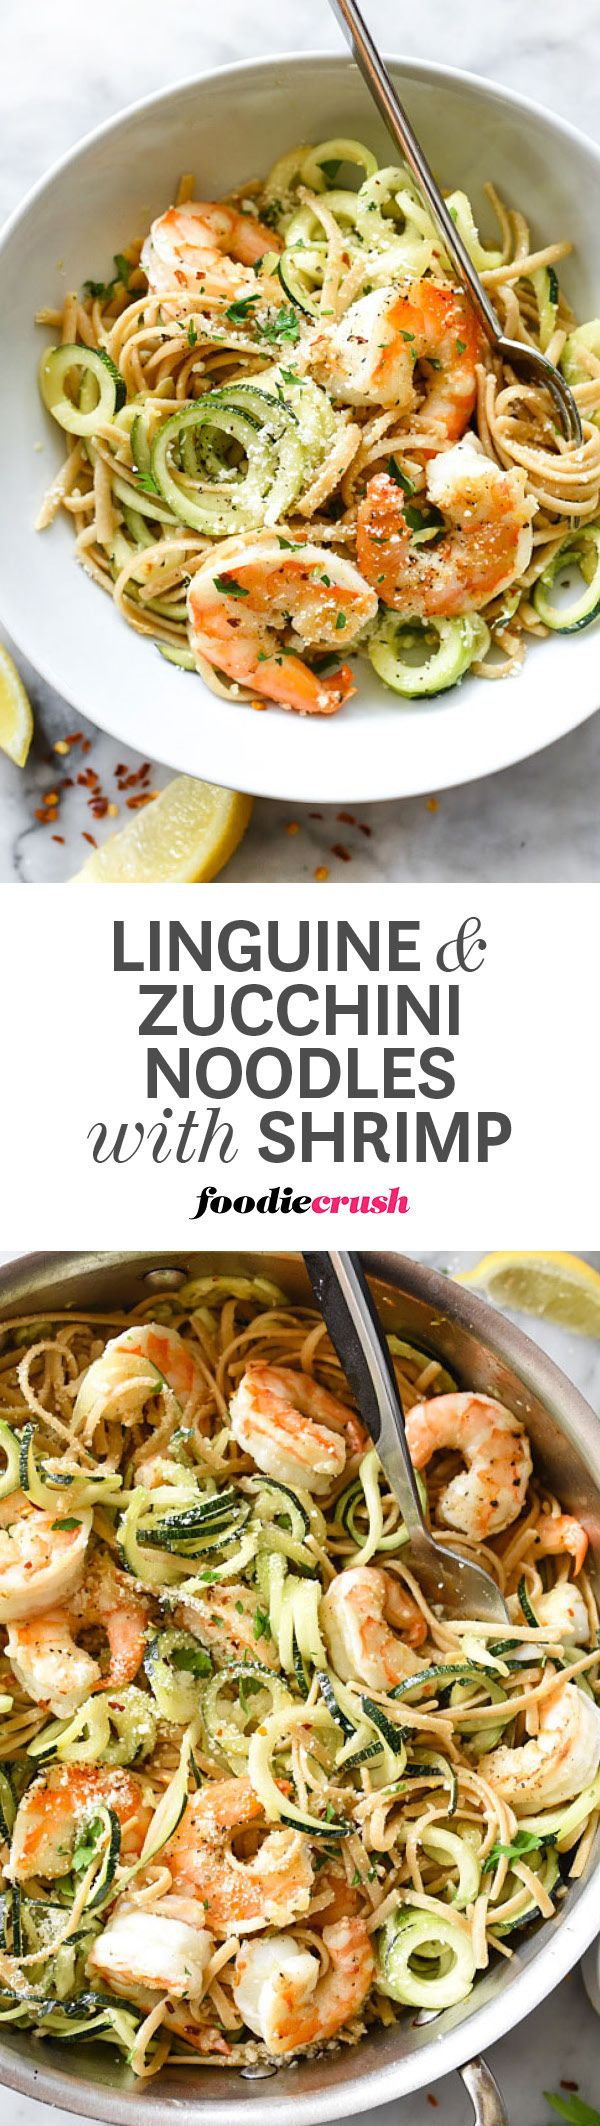 It's not a question of either/or pasta/zucchini noodles but rather…